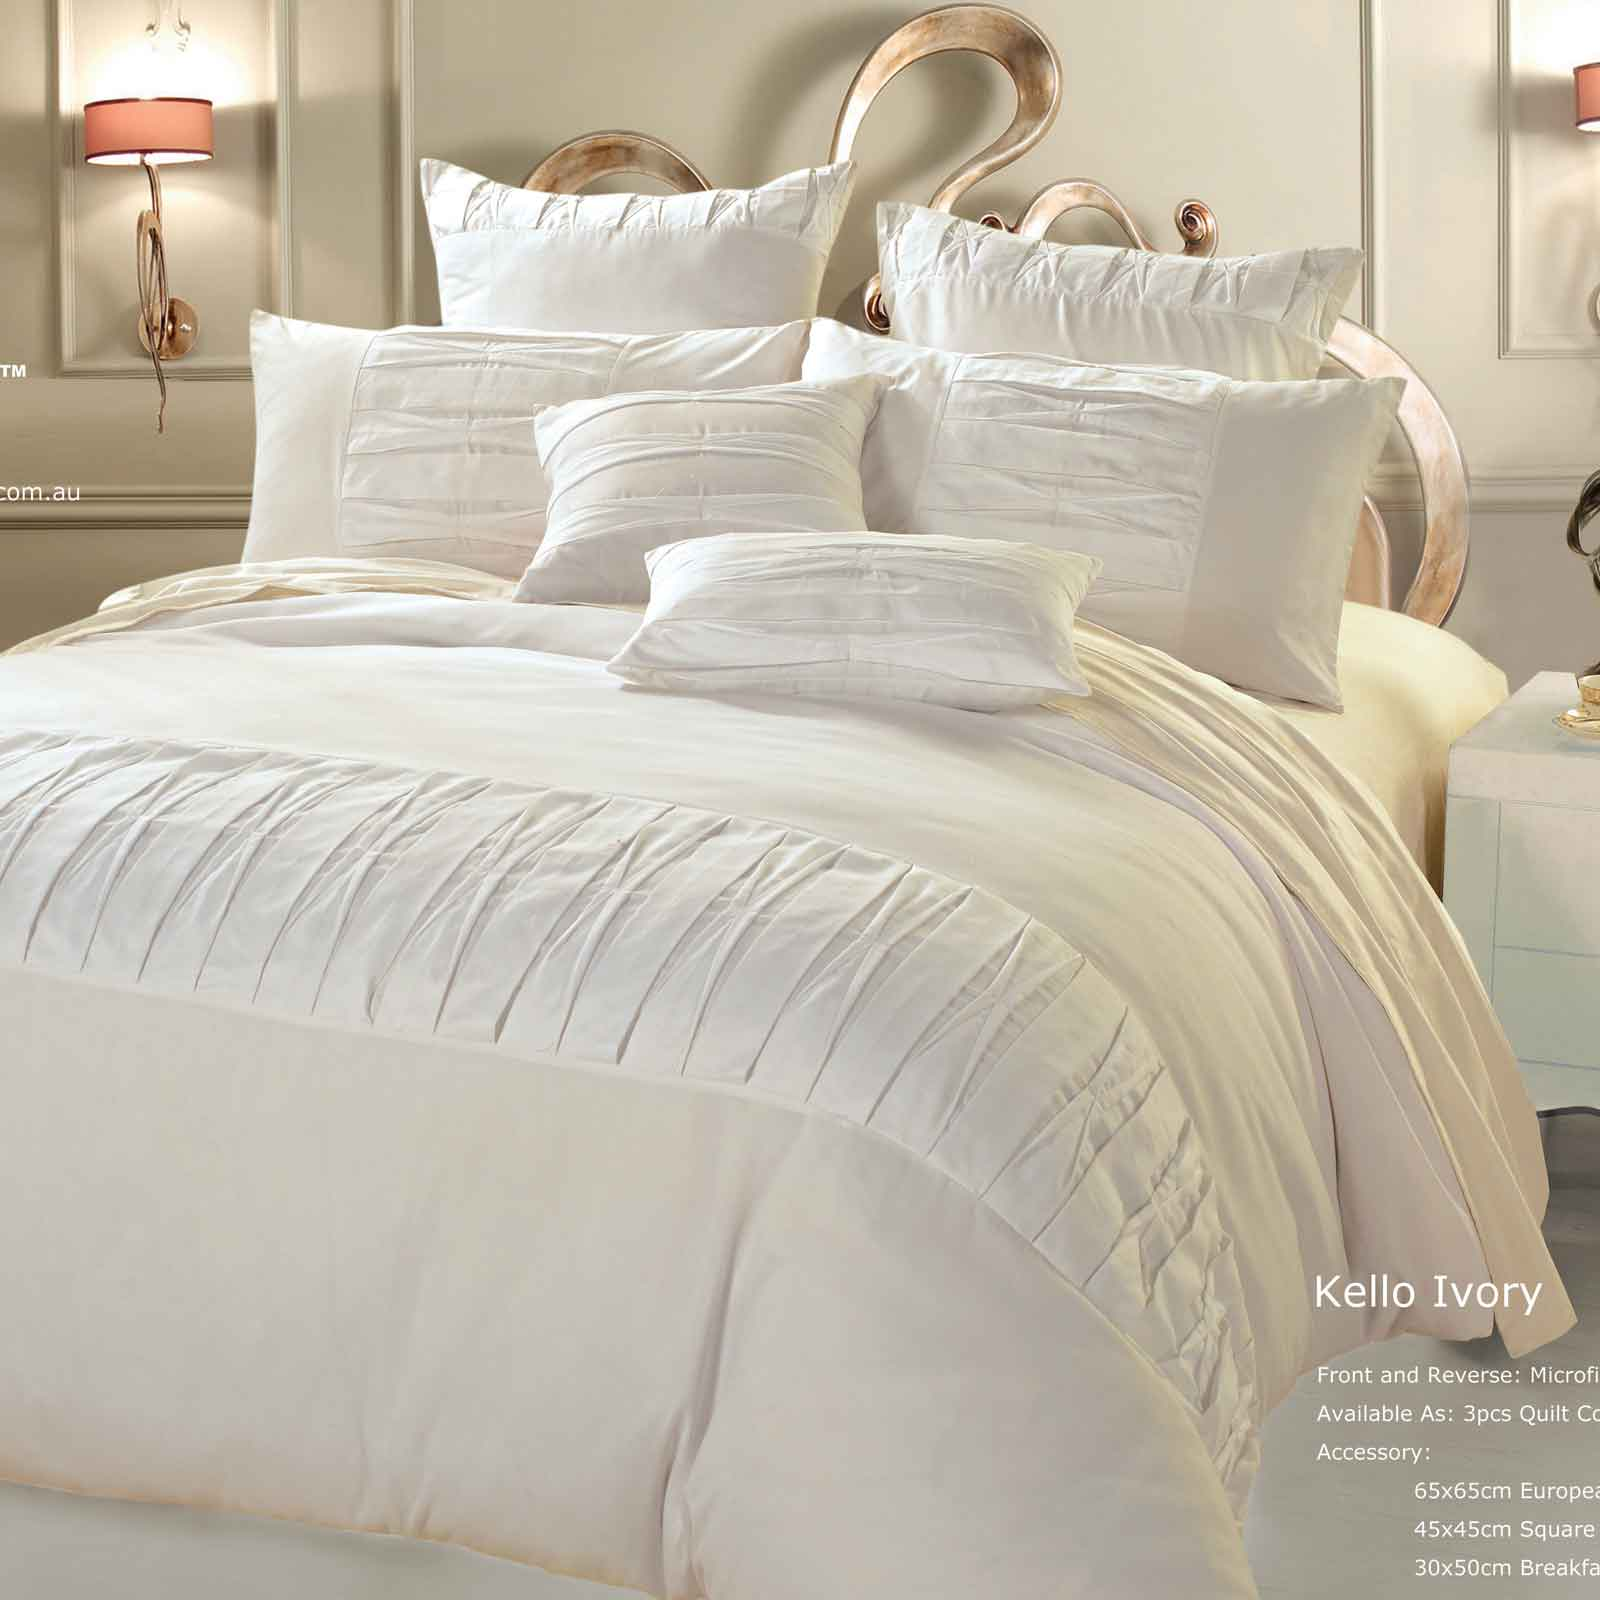 Luxton-Linen-Kello-Ivory-King-Duvet-Quilt-Cover-Set-3pcs-Bedding-set-J06IVYK